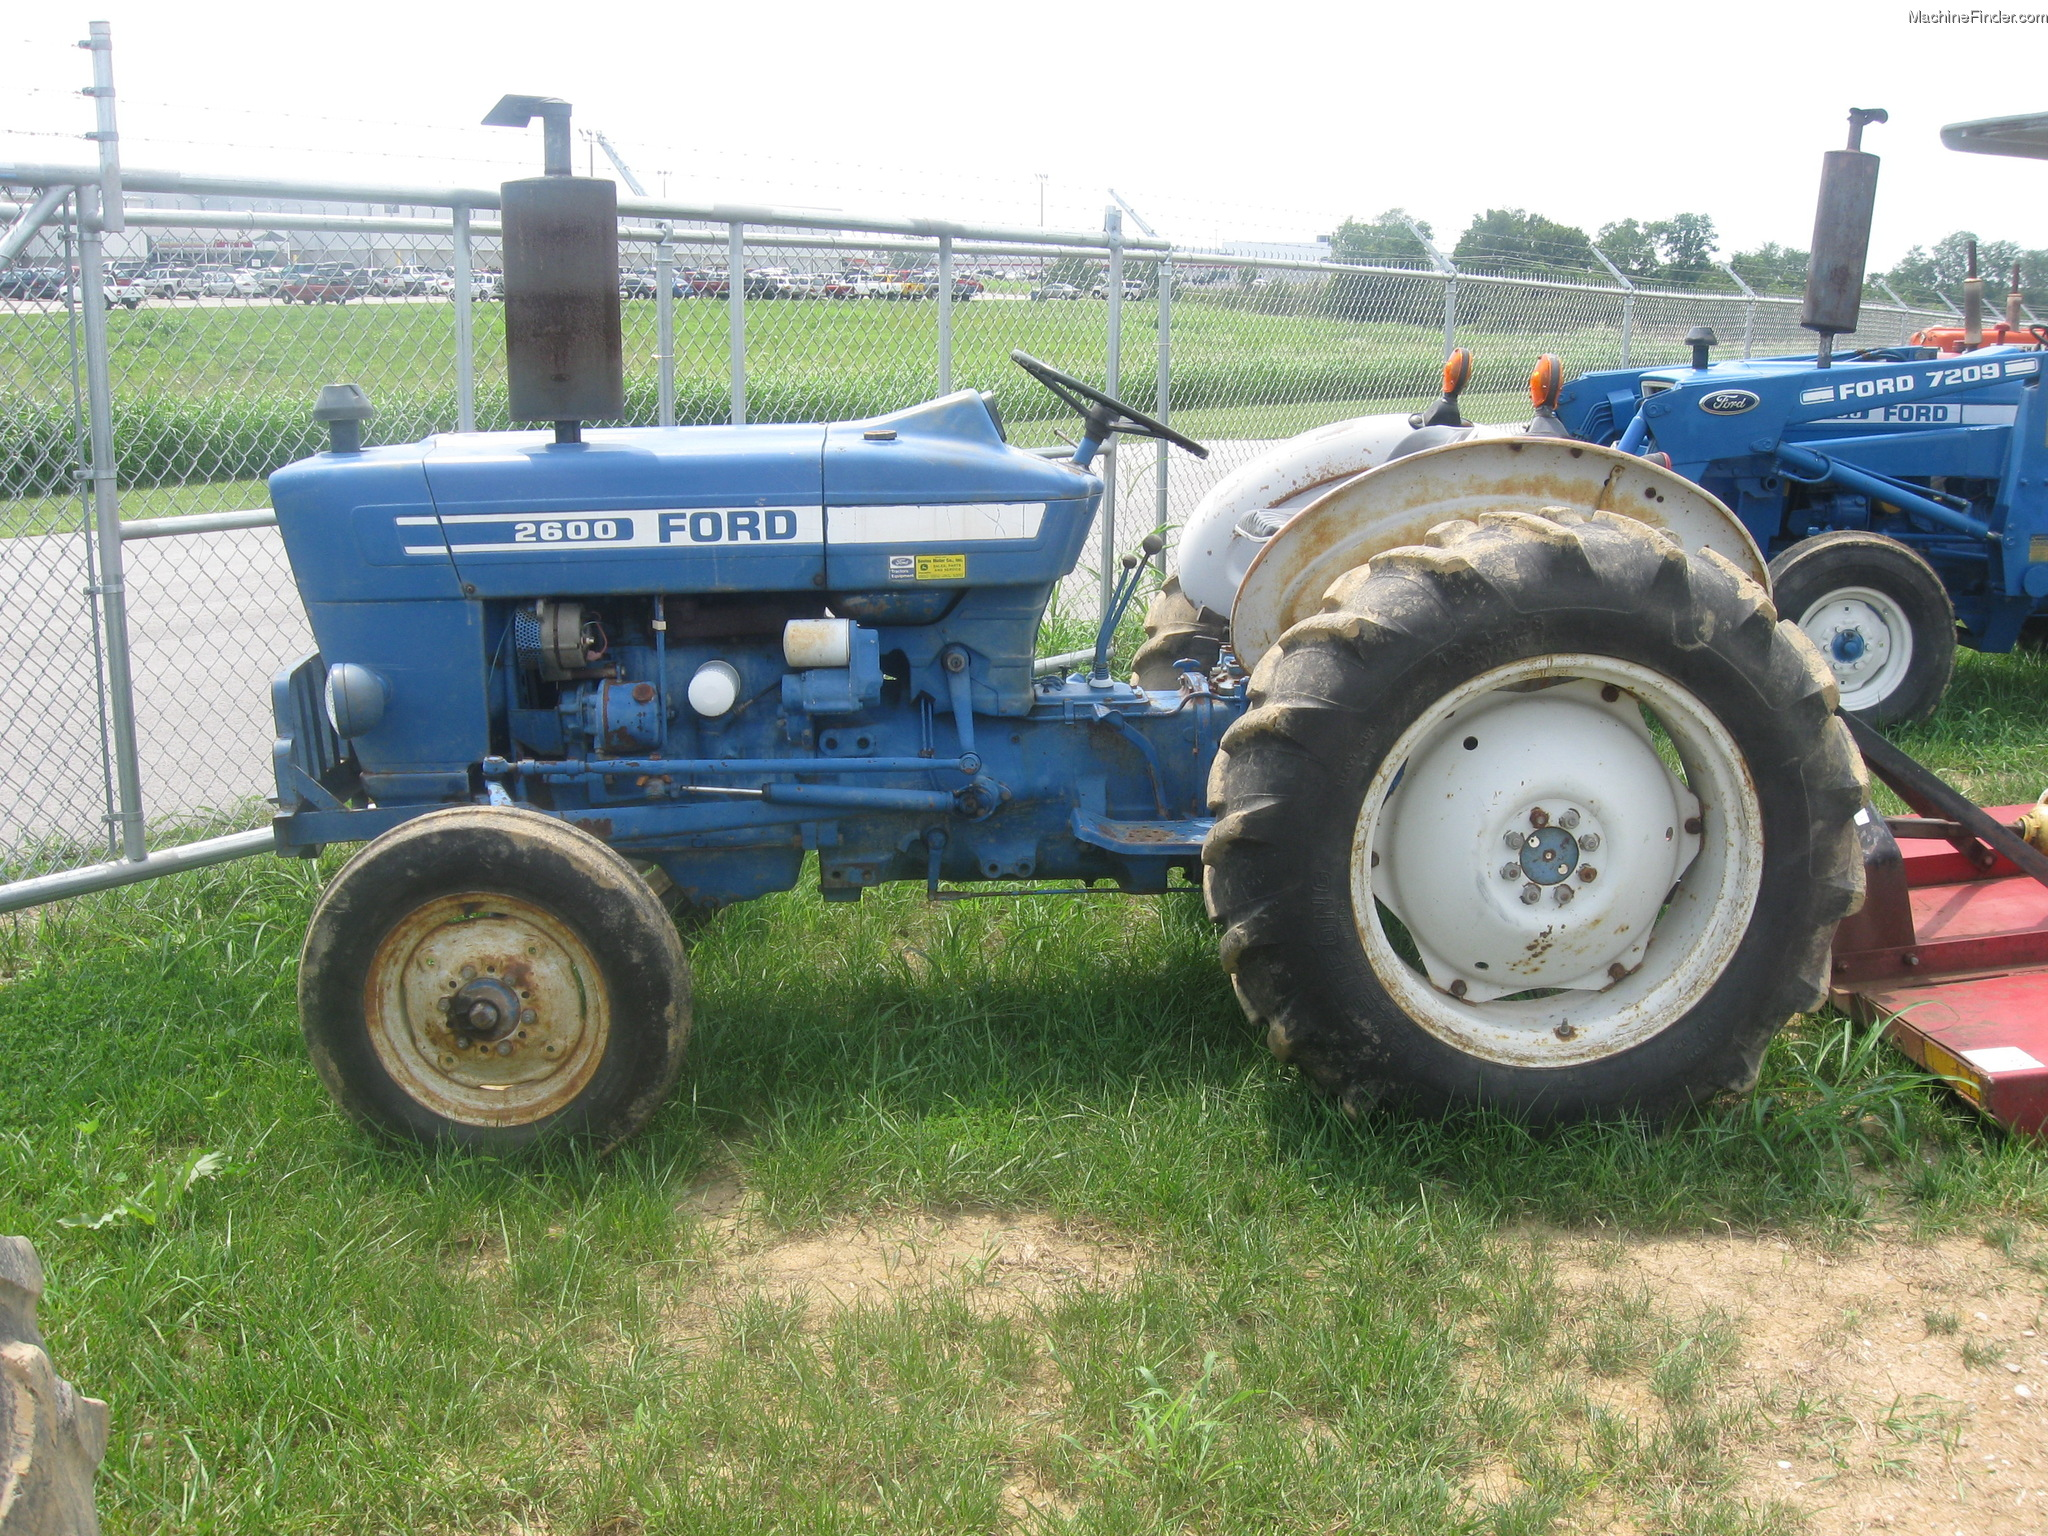 Ford 2600 Tractor Front Bumper : Ford tractor bing images